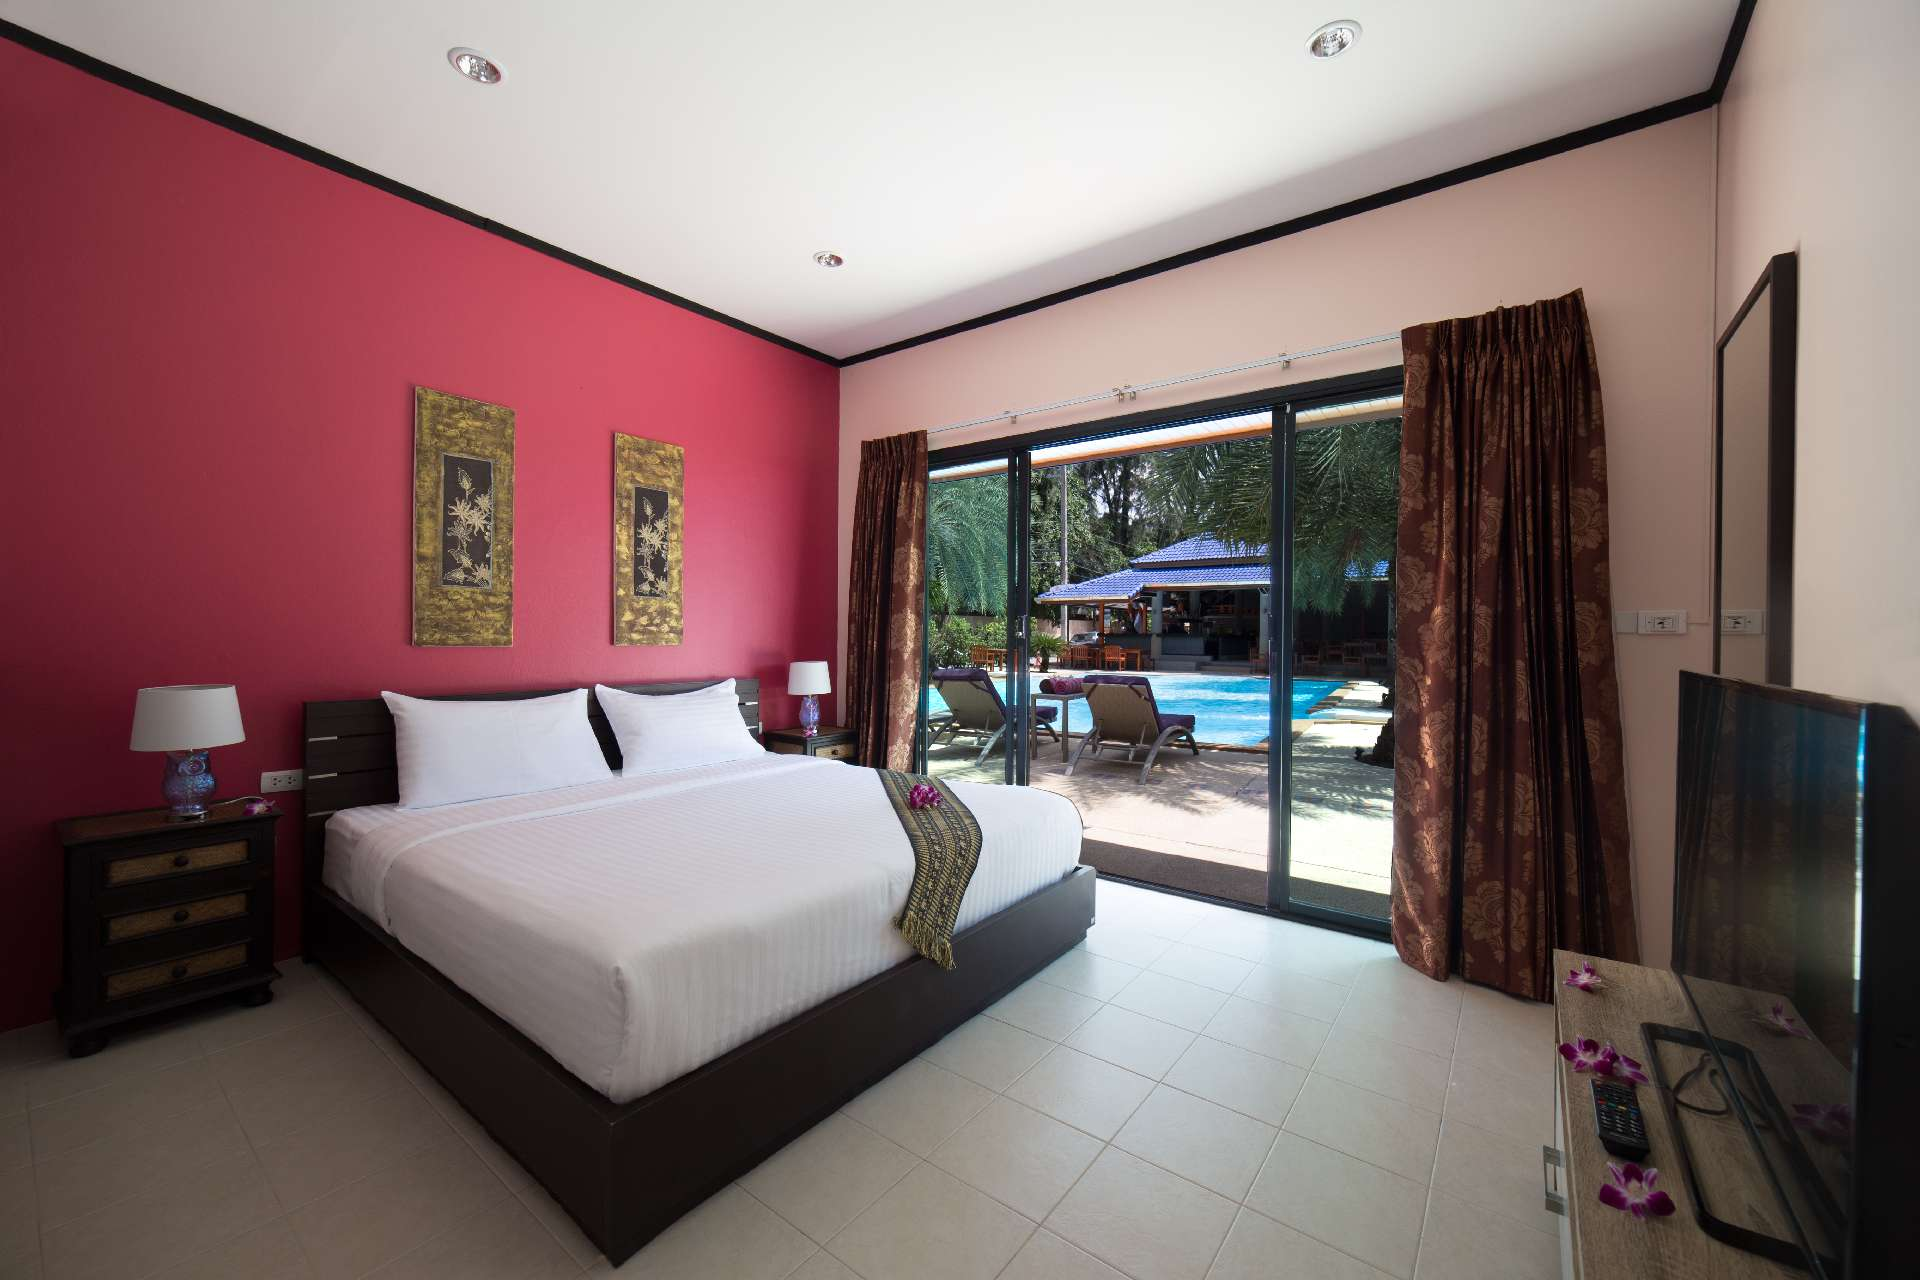 Bedroom with Pool View - Ma Maison Phuket in Bang Tao Beach 001